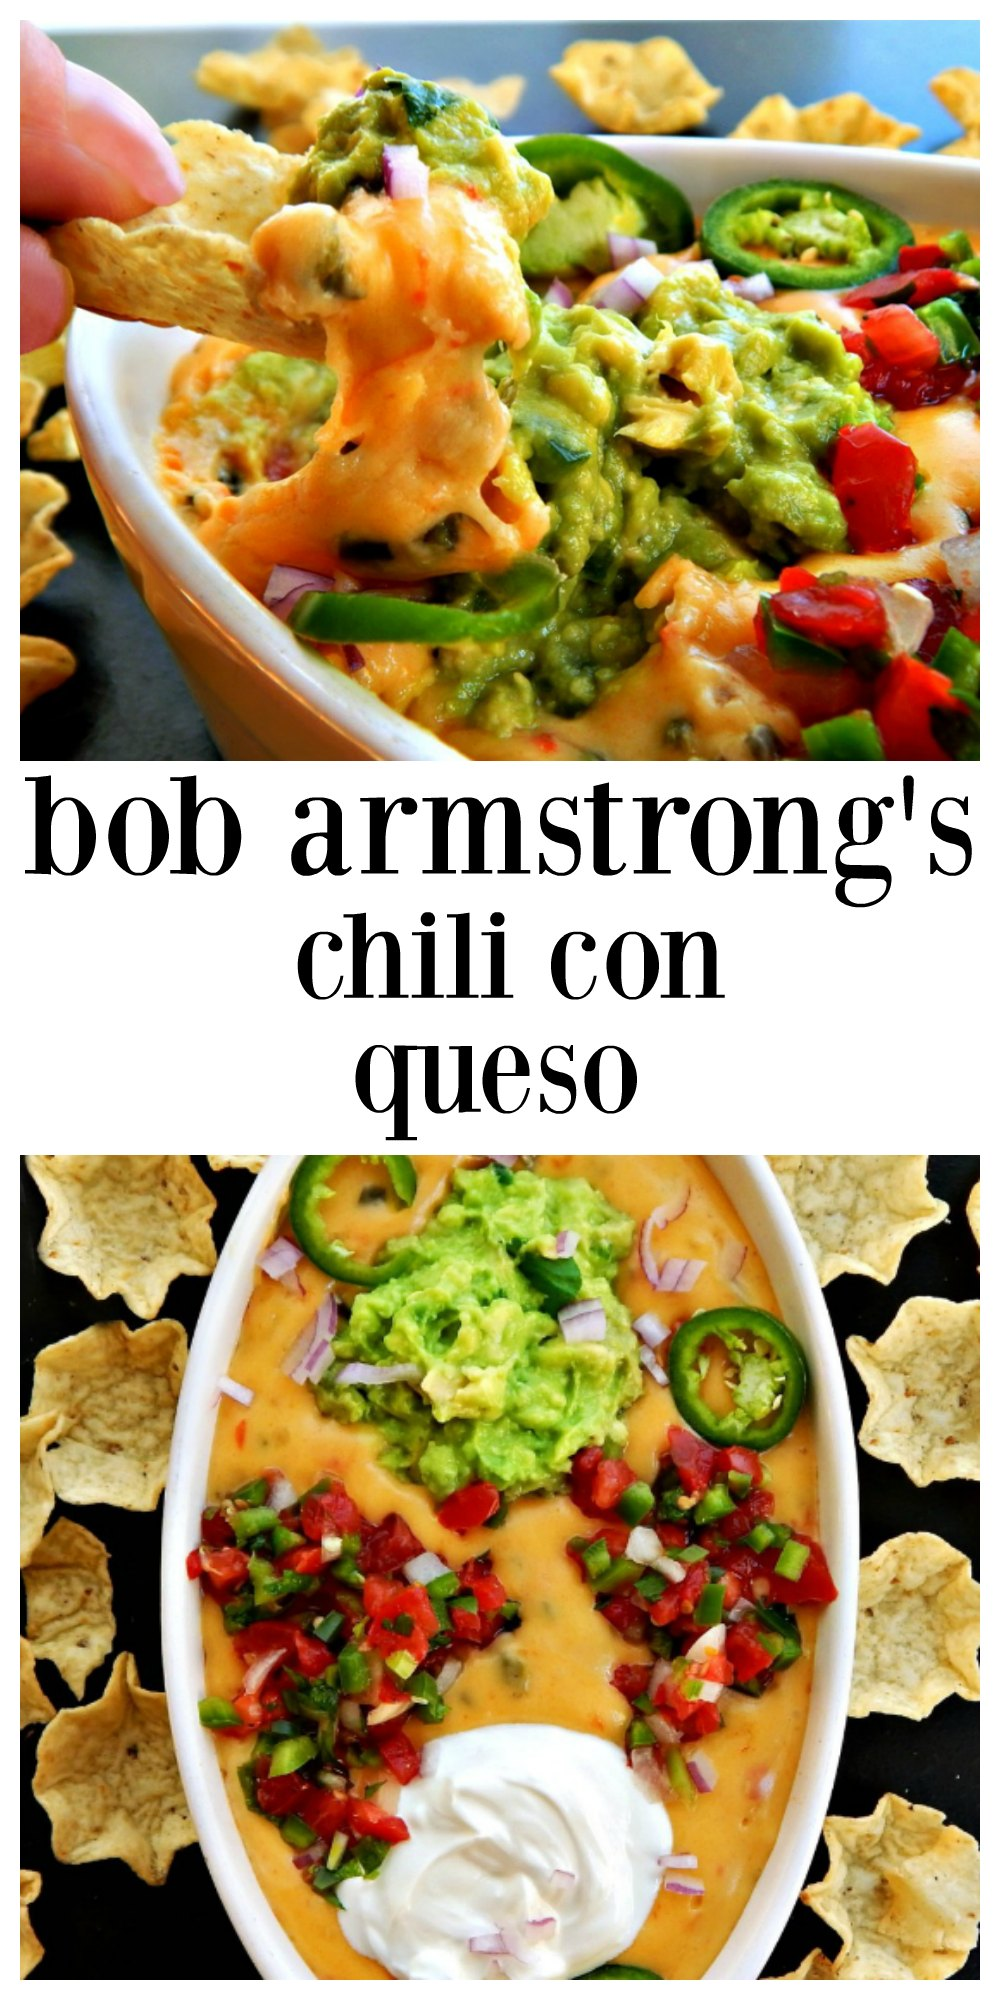 Bob Armstrong Chile con Queso is velvety cheese punctuated by poblano peppers, jalapeno, tomato & onion napped over a old school no bean chili and topped with the works! Pico, Guac, Sour Cream, pickled jalapenos. You will be remembered for this! Make extra, lots extra and refresh as needed! #BobArmstrongChiliConQueso #BobArmstrongChileConQueso #ChiliconQueso #CincoDeMayoChileConQueso